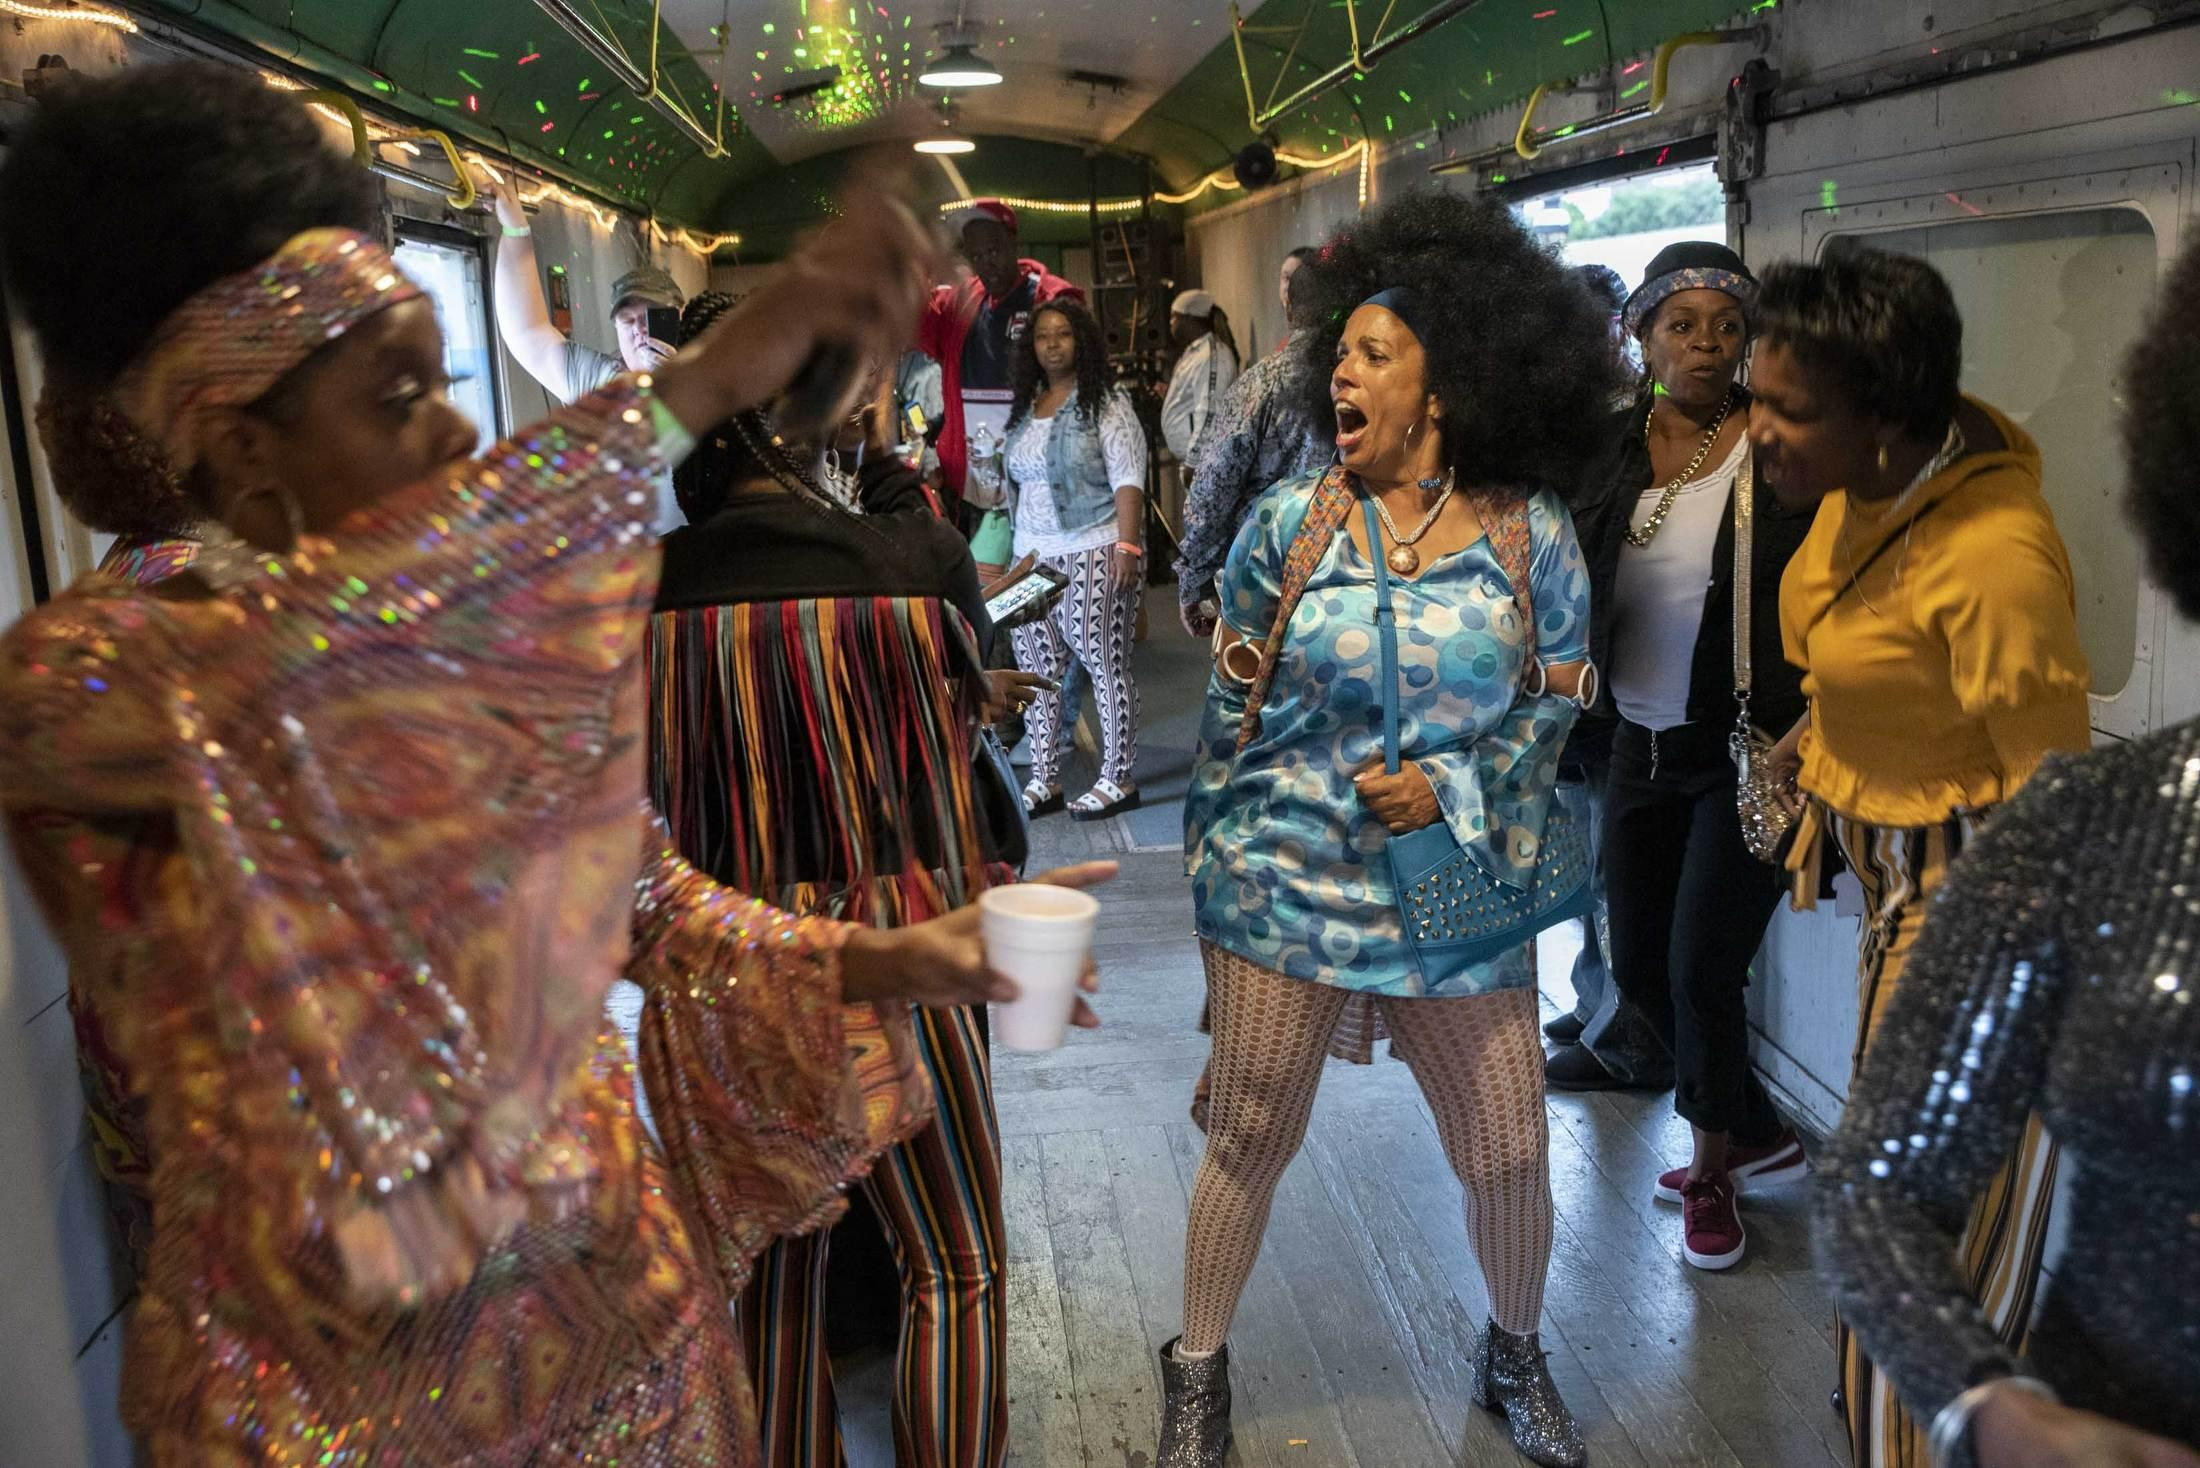 People travel from across the states for the Soul Train in Utica, NY. The four hour train ride includes food, a bar, and DJ car.